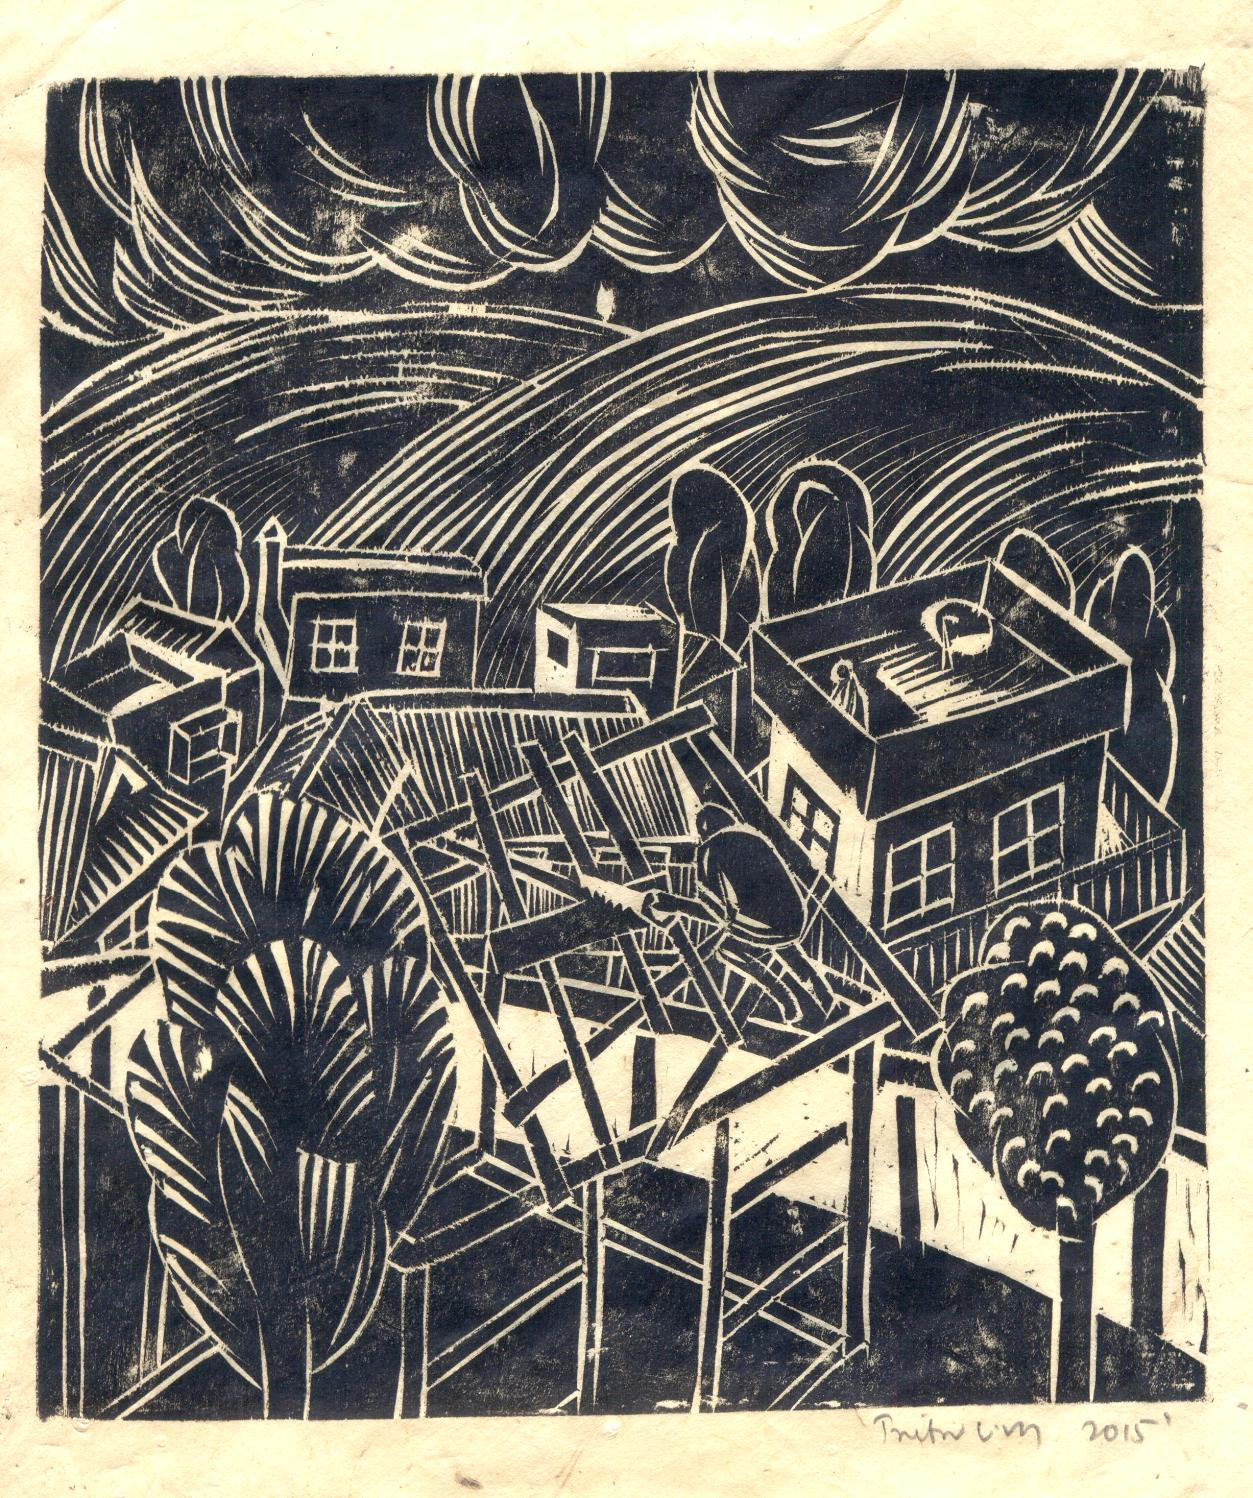 "Treibor Mawlong | The Home Maker | Woodcut print | 8.75"" x 7.75"" 